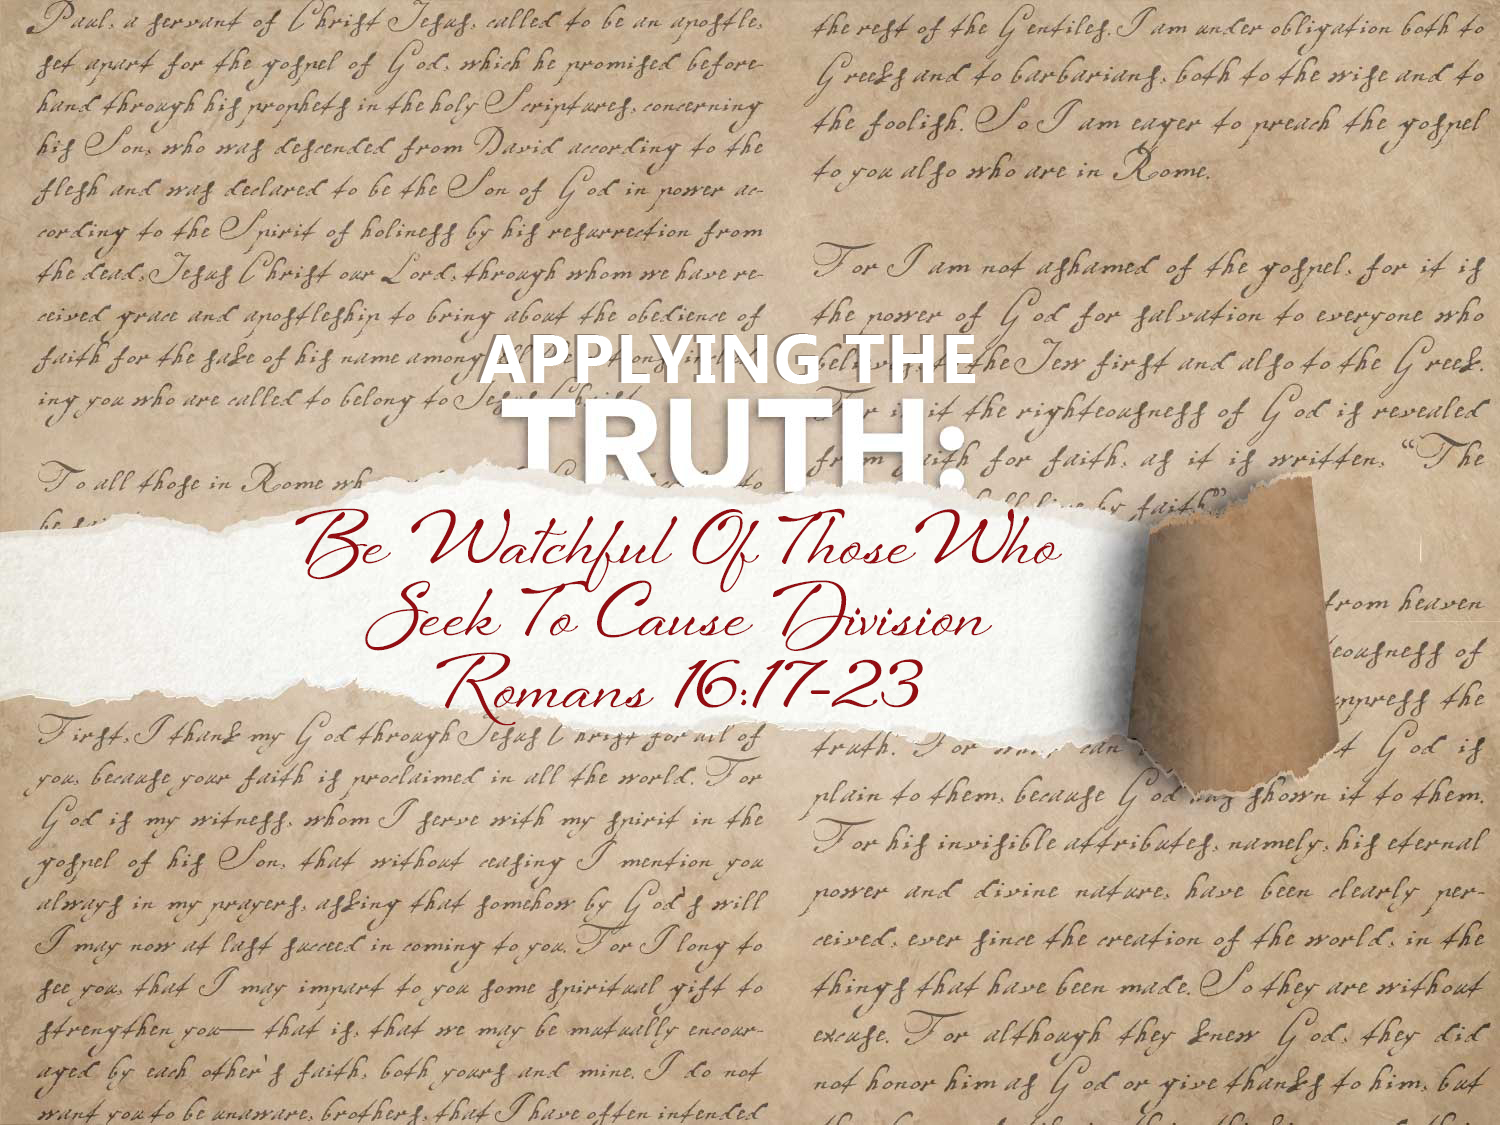 Romans 16 v 17-23 Be Watchful Of Those Who Seek To Cause Division